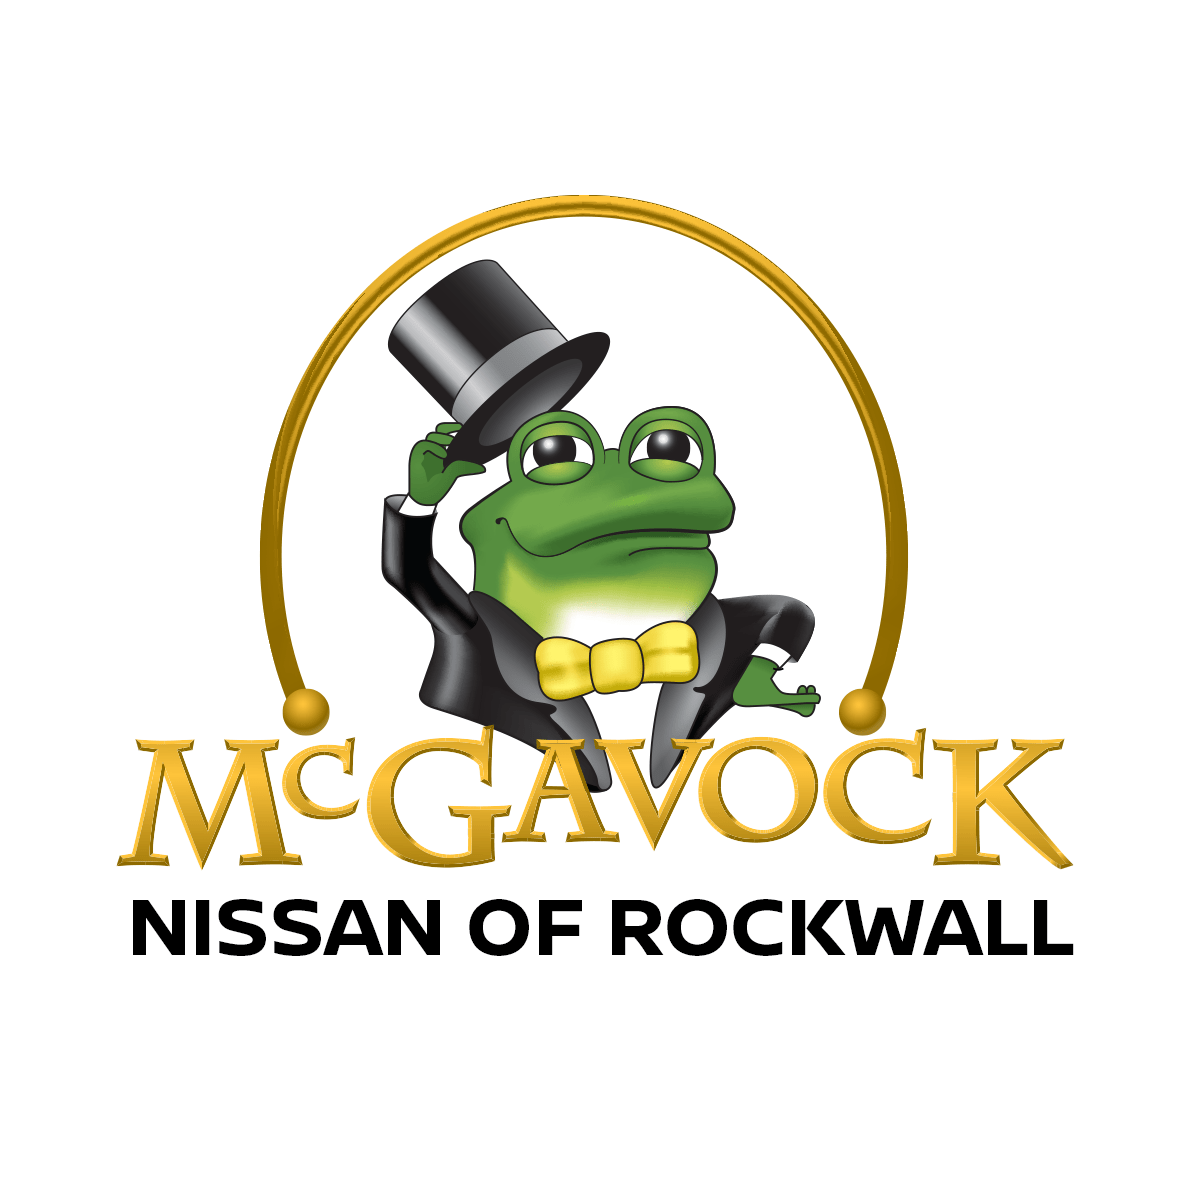 McGavock Nissan of Rockwall logo